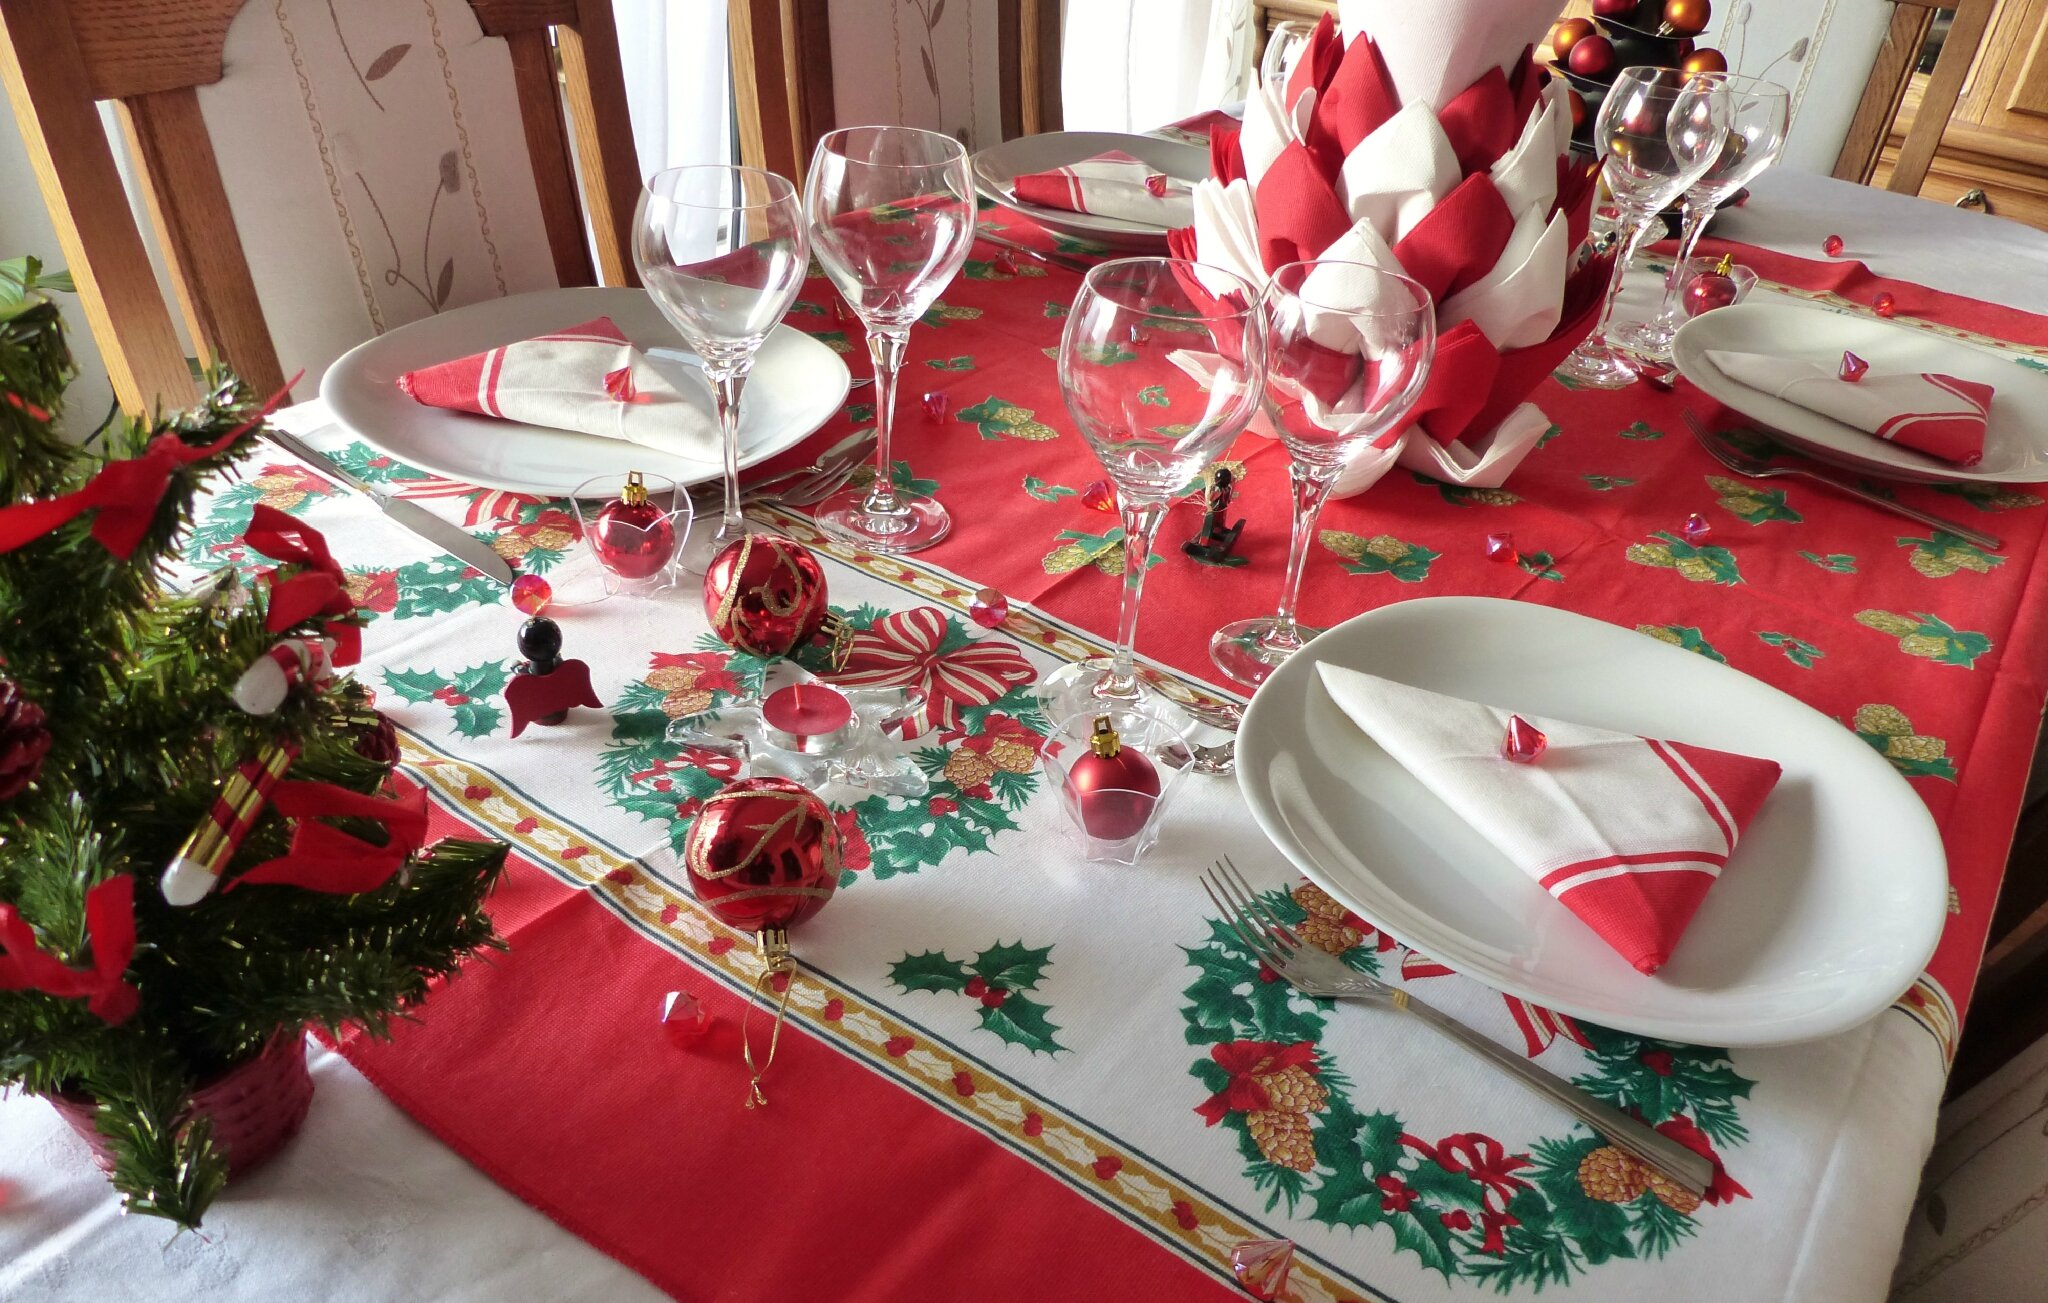 D coration de table clich d 39 un no l en rouge cuill re gour - Deco table de noel a faire ...